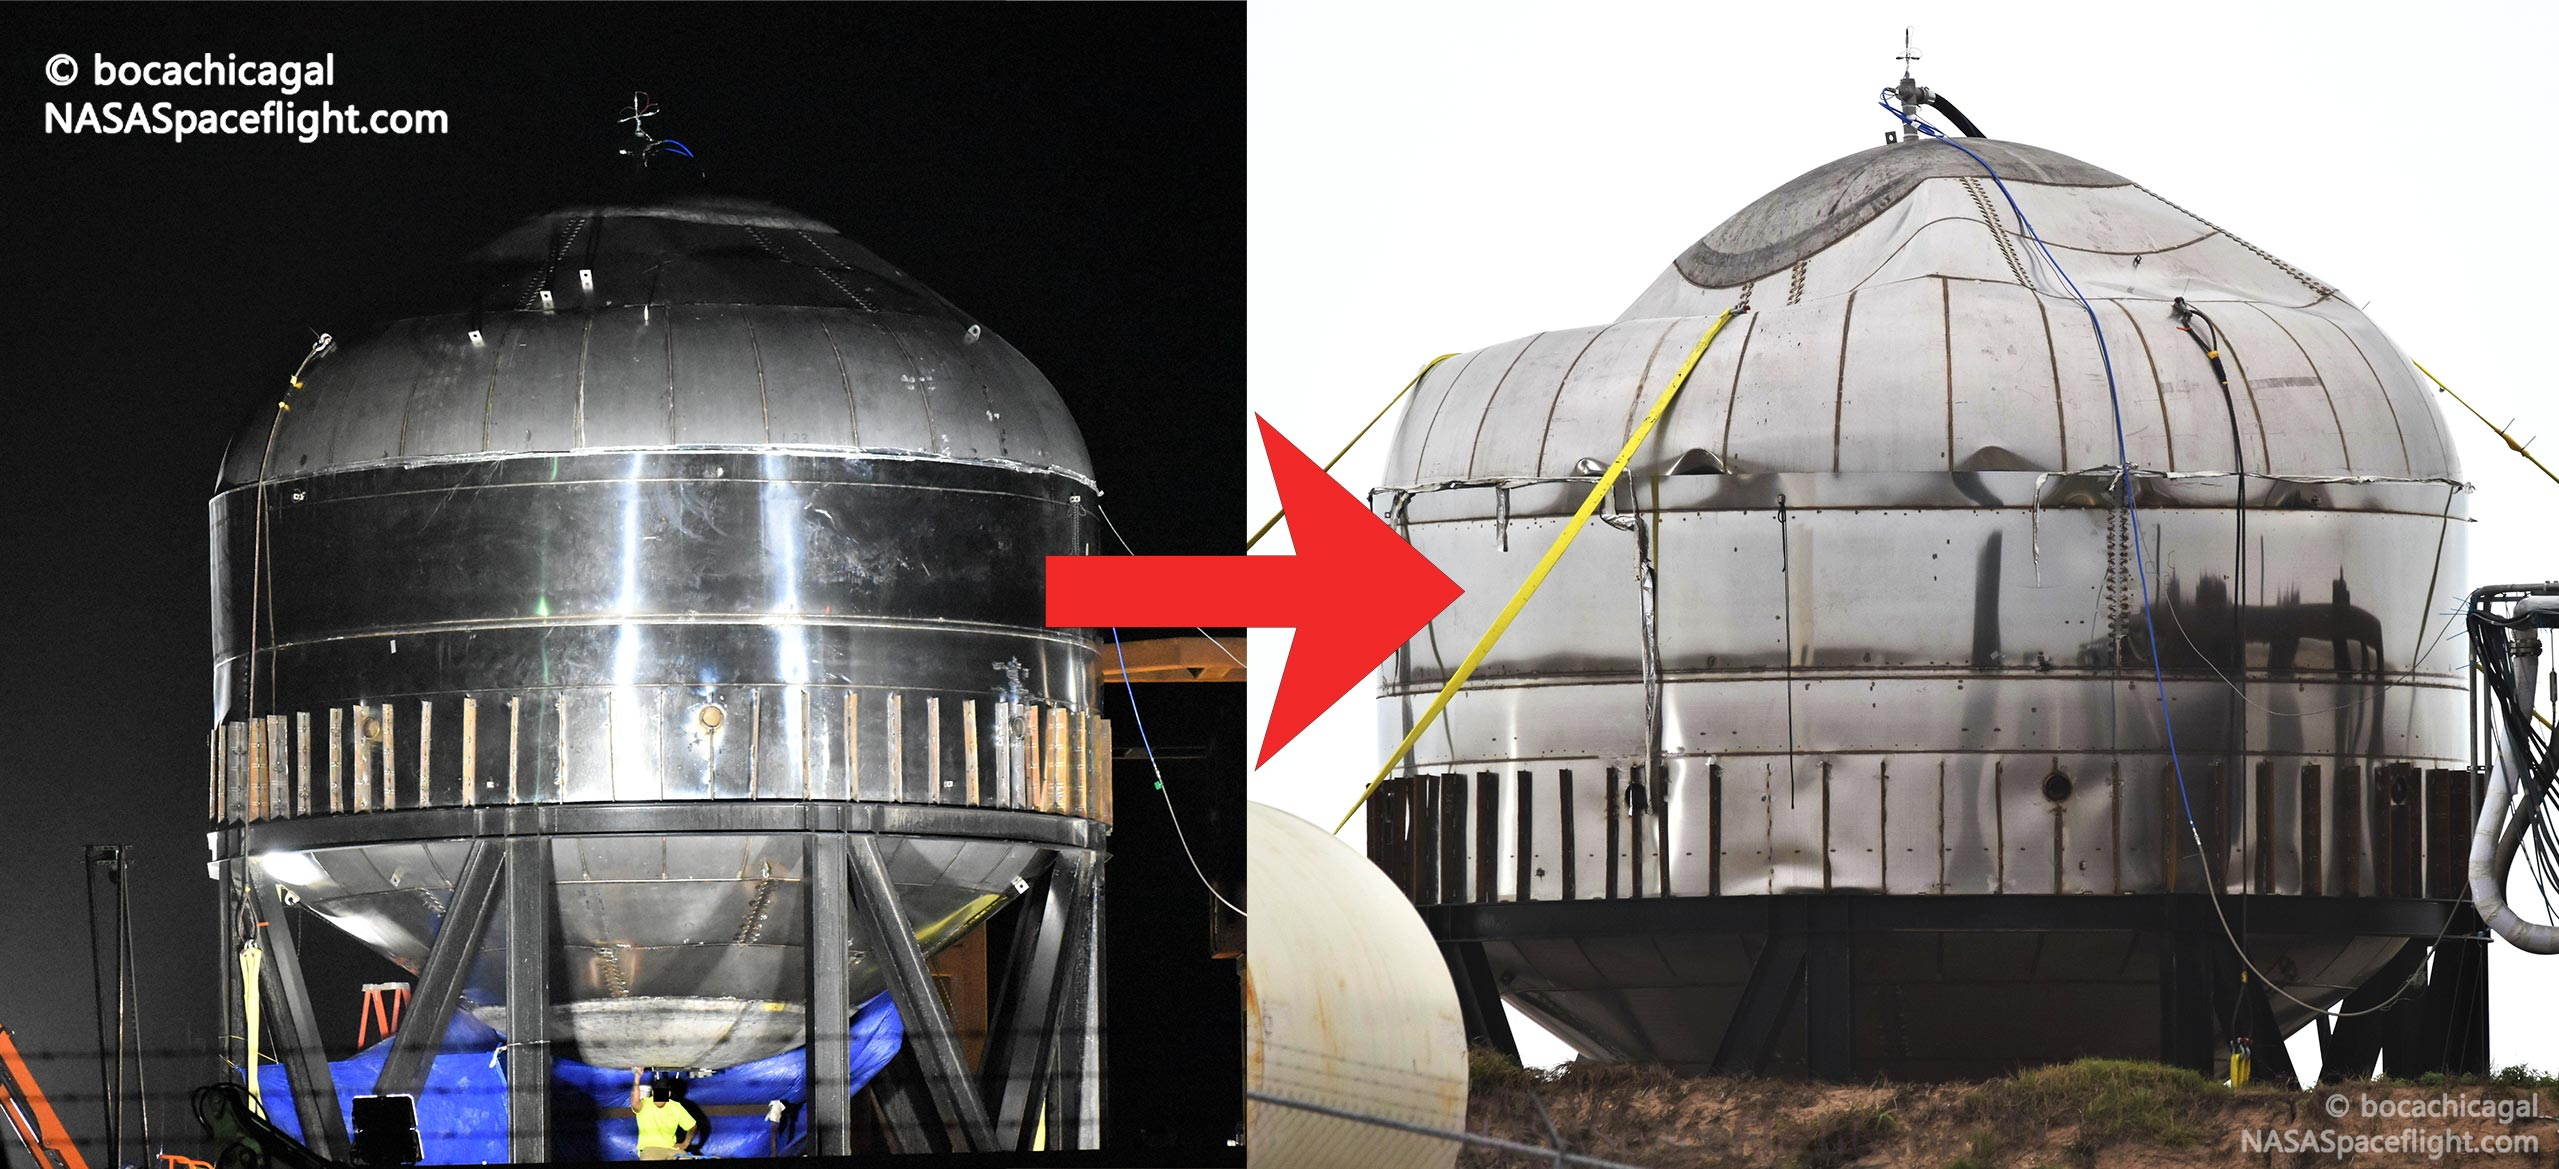 Spacex Just Blew Up A Starship Tank On Purpose And Elon